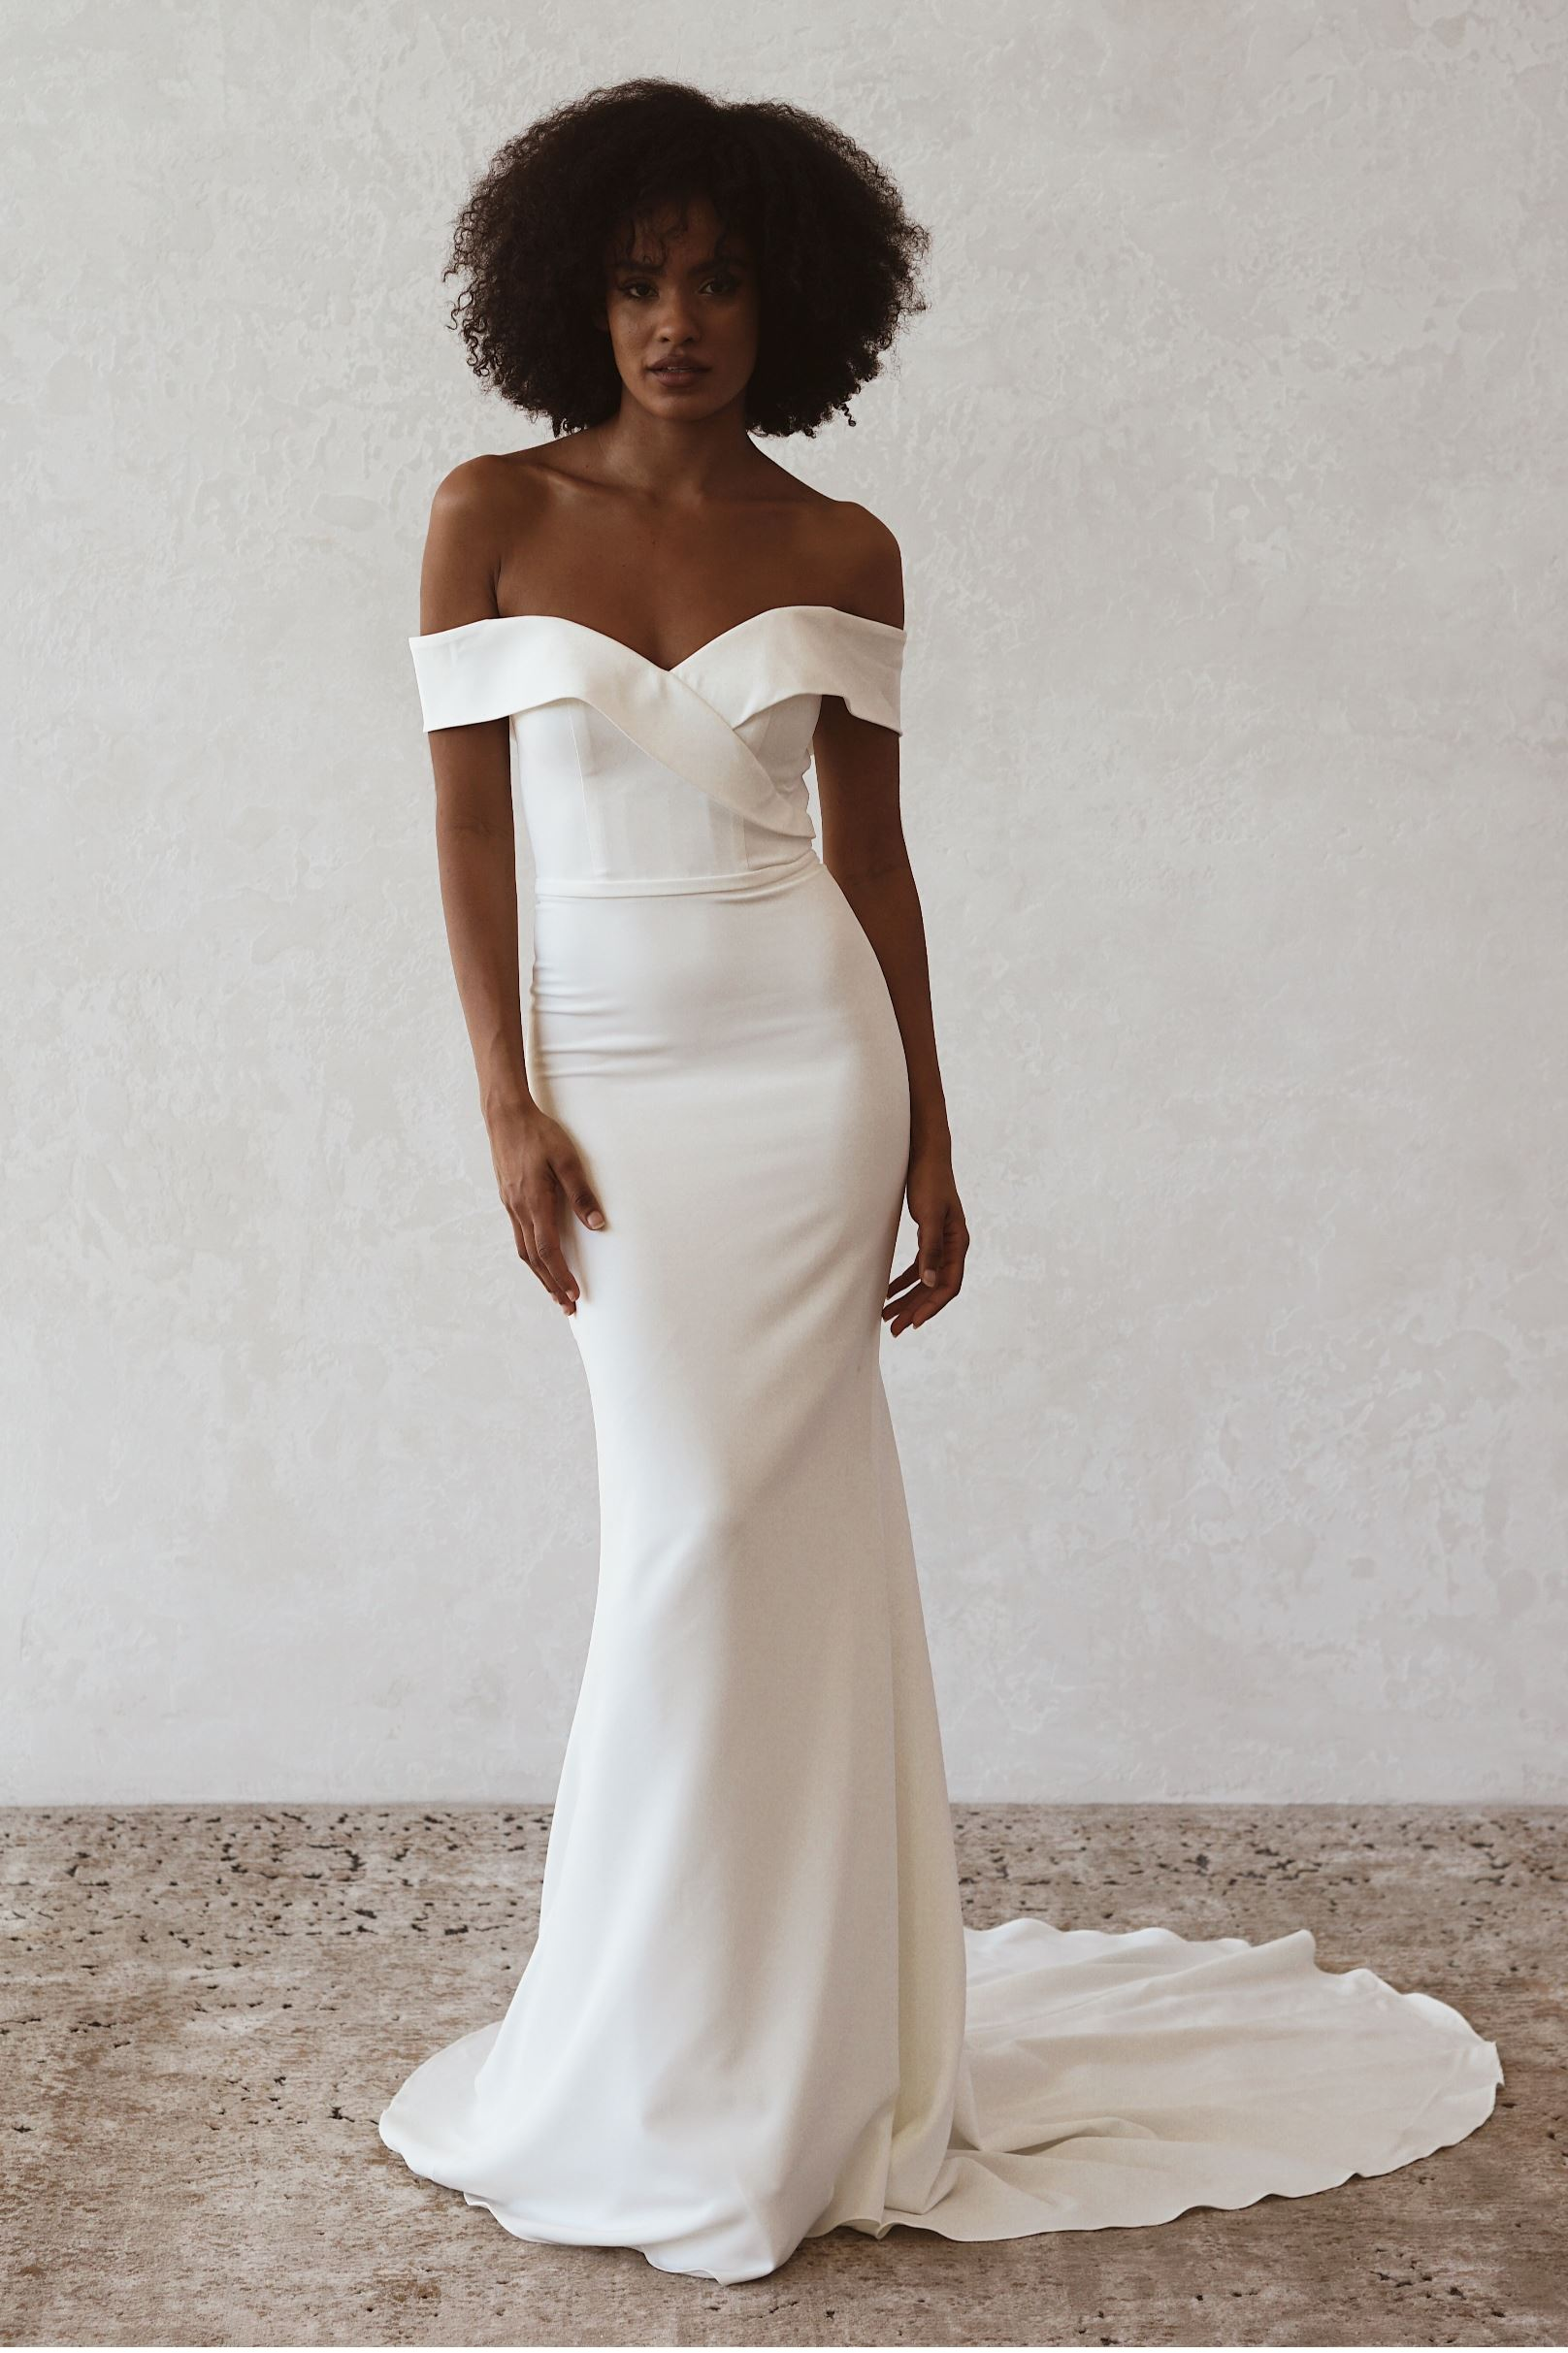 Model wearing a Off the Shoulder gown